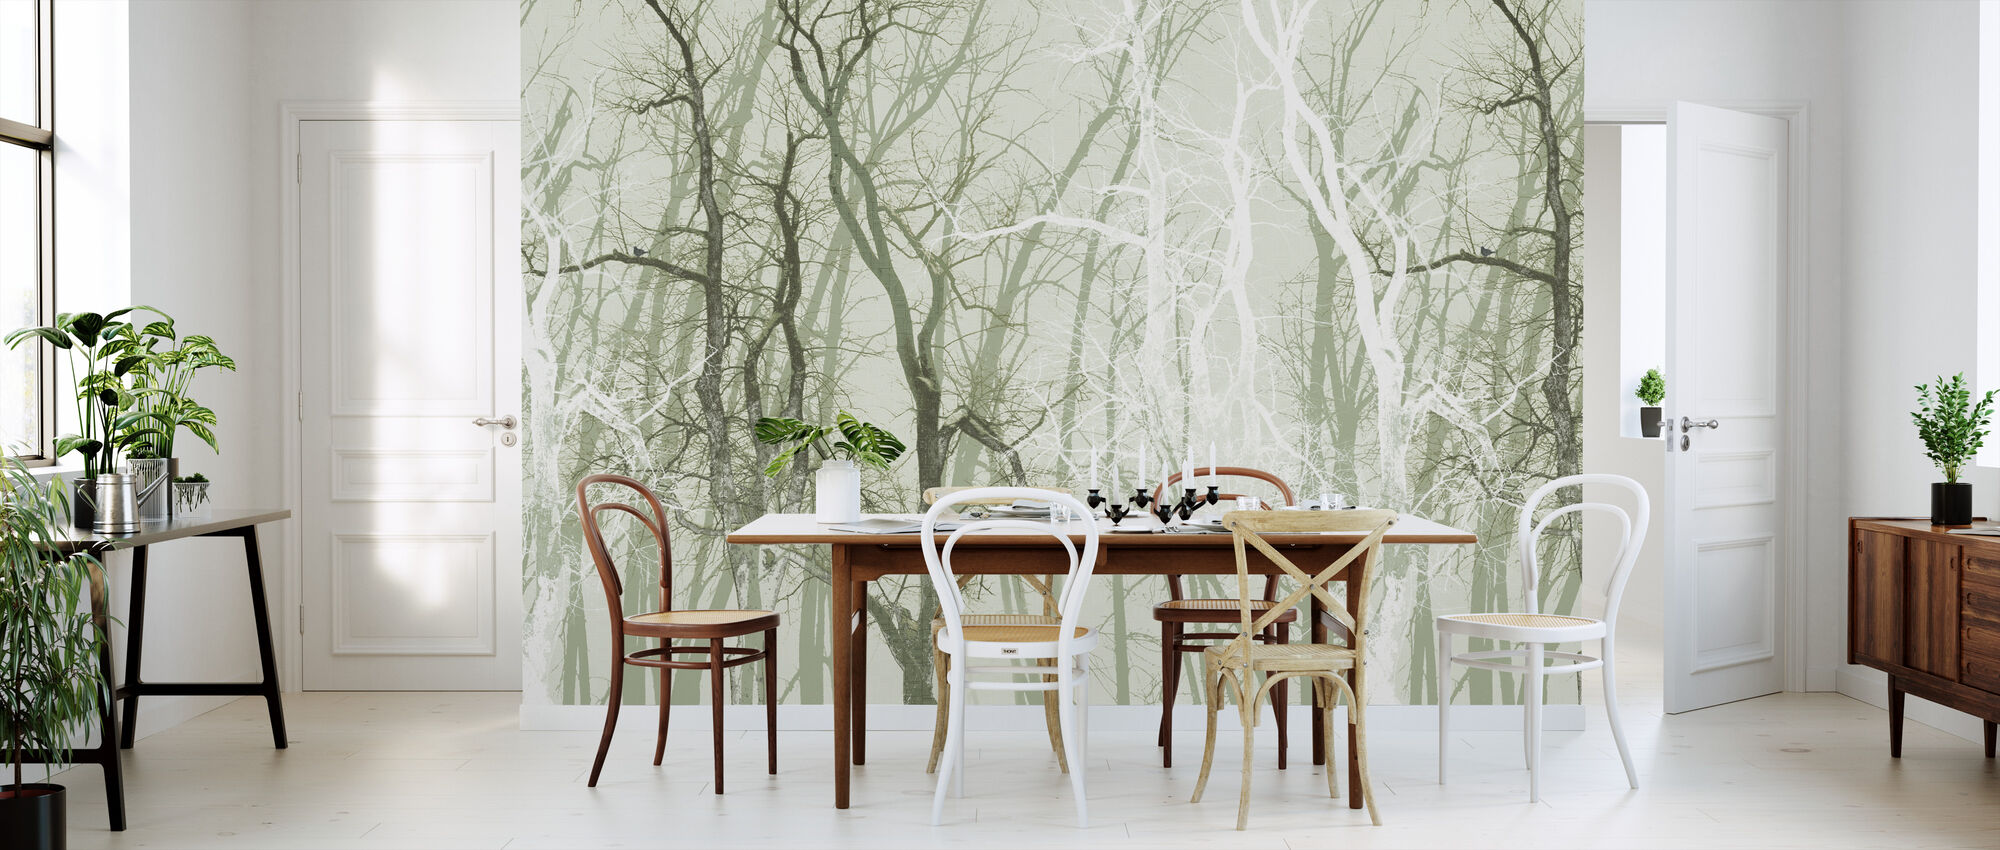 Wander Trees Green - Wallpaper - Kitchen